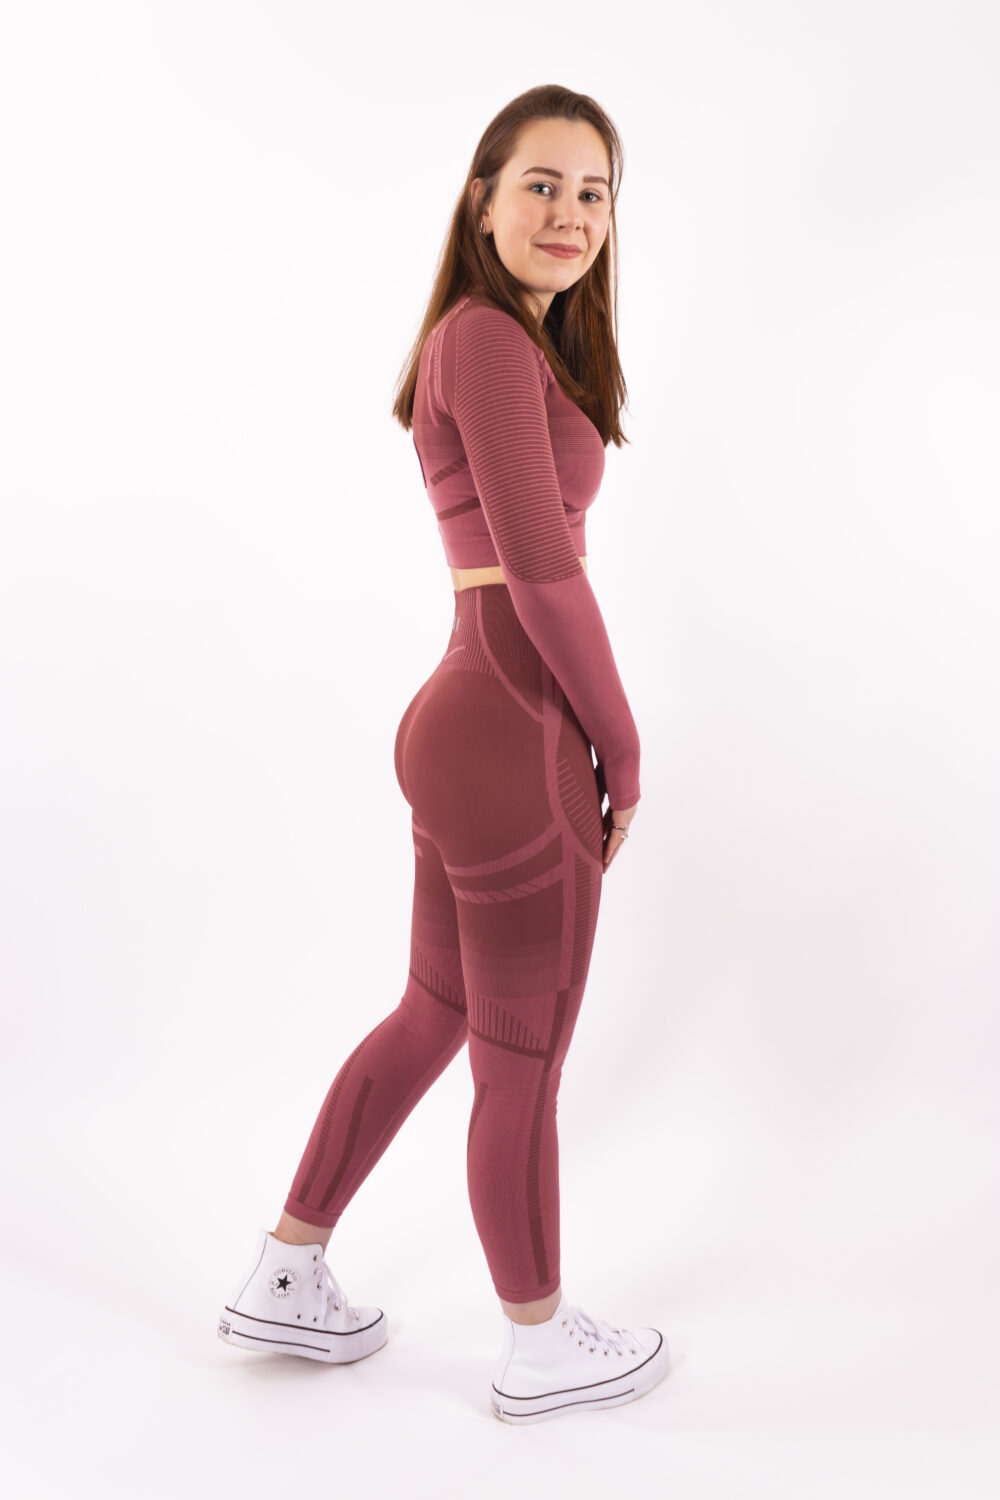 a/w pink set woman nutrition